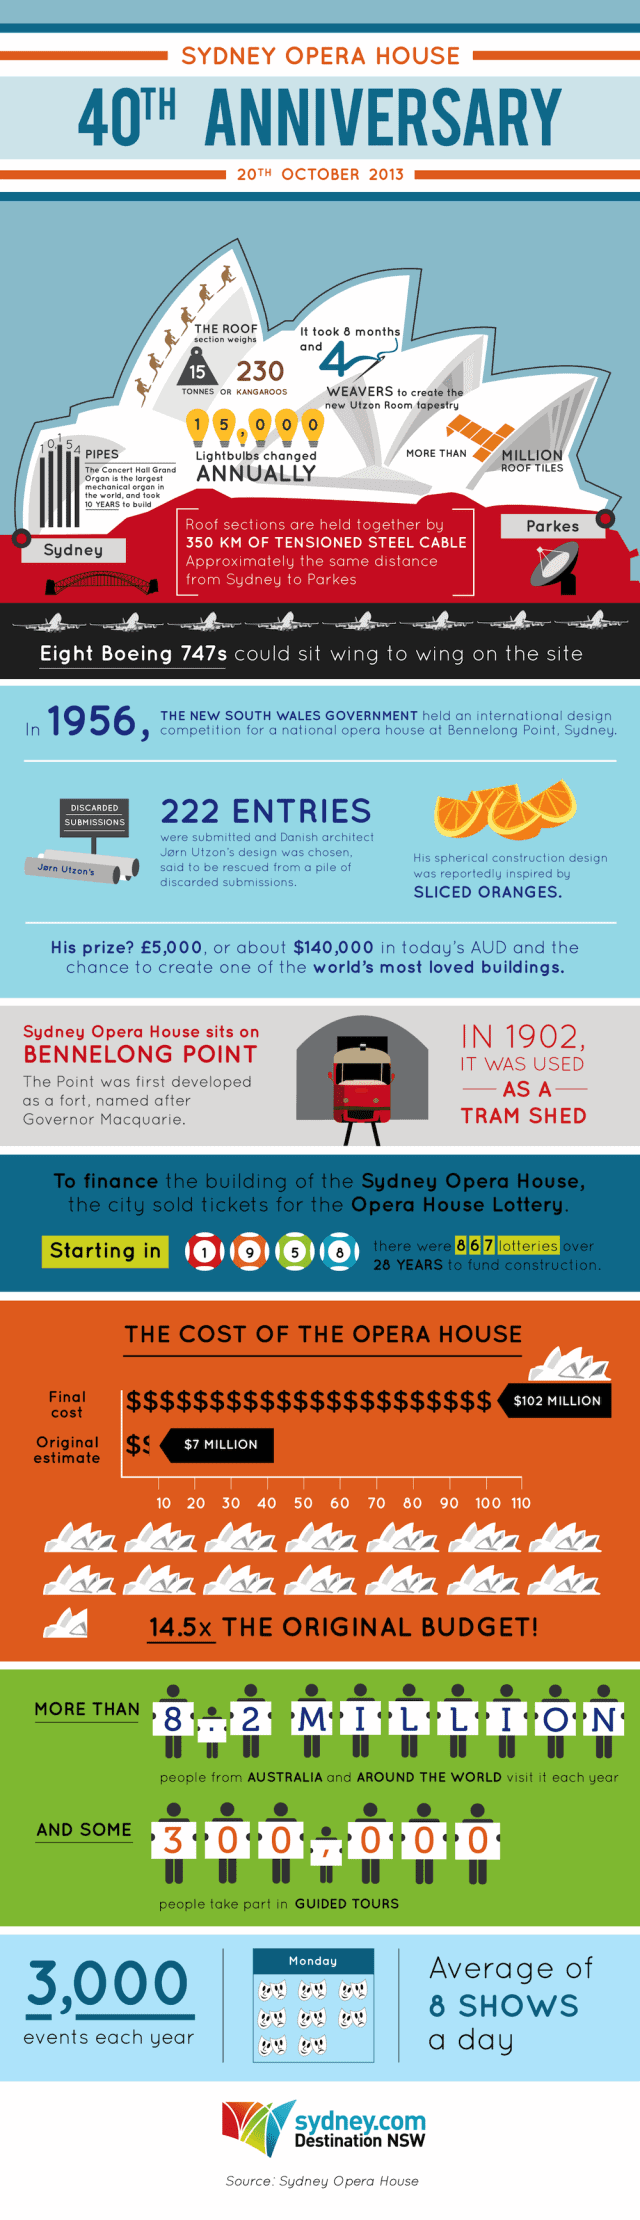 sydney-opera-house-40th-year-anniversary-infographic (1)